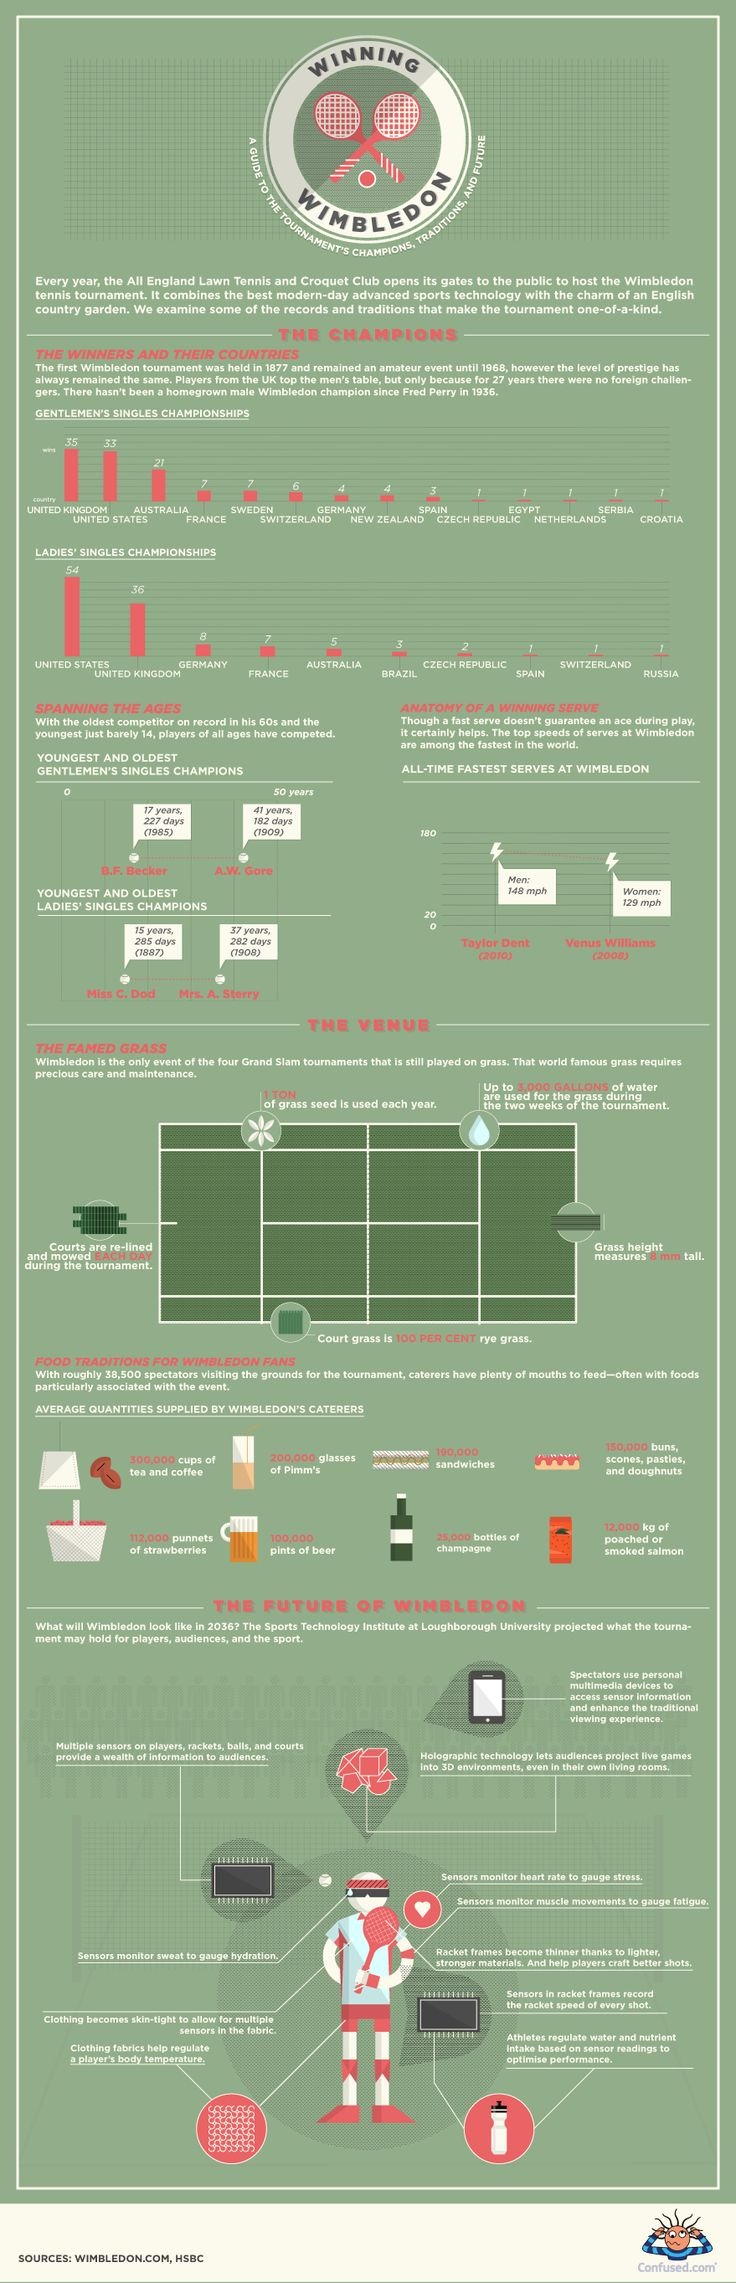 The future of Wimbledon [Infographic]: Sports Infographics, Tennis Tournament, Wimbledon 2013, Favorite Sports, Tennis Infographics, Infographics Info Design, Infographics Sports, Wimbledon Tennis, Winning Wimbledon